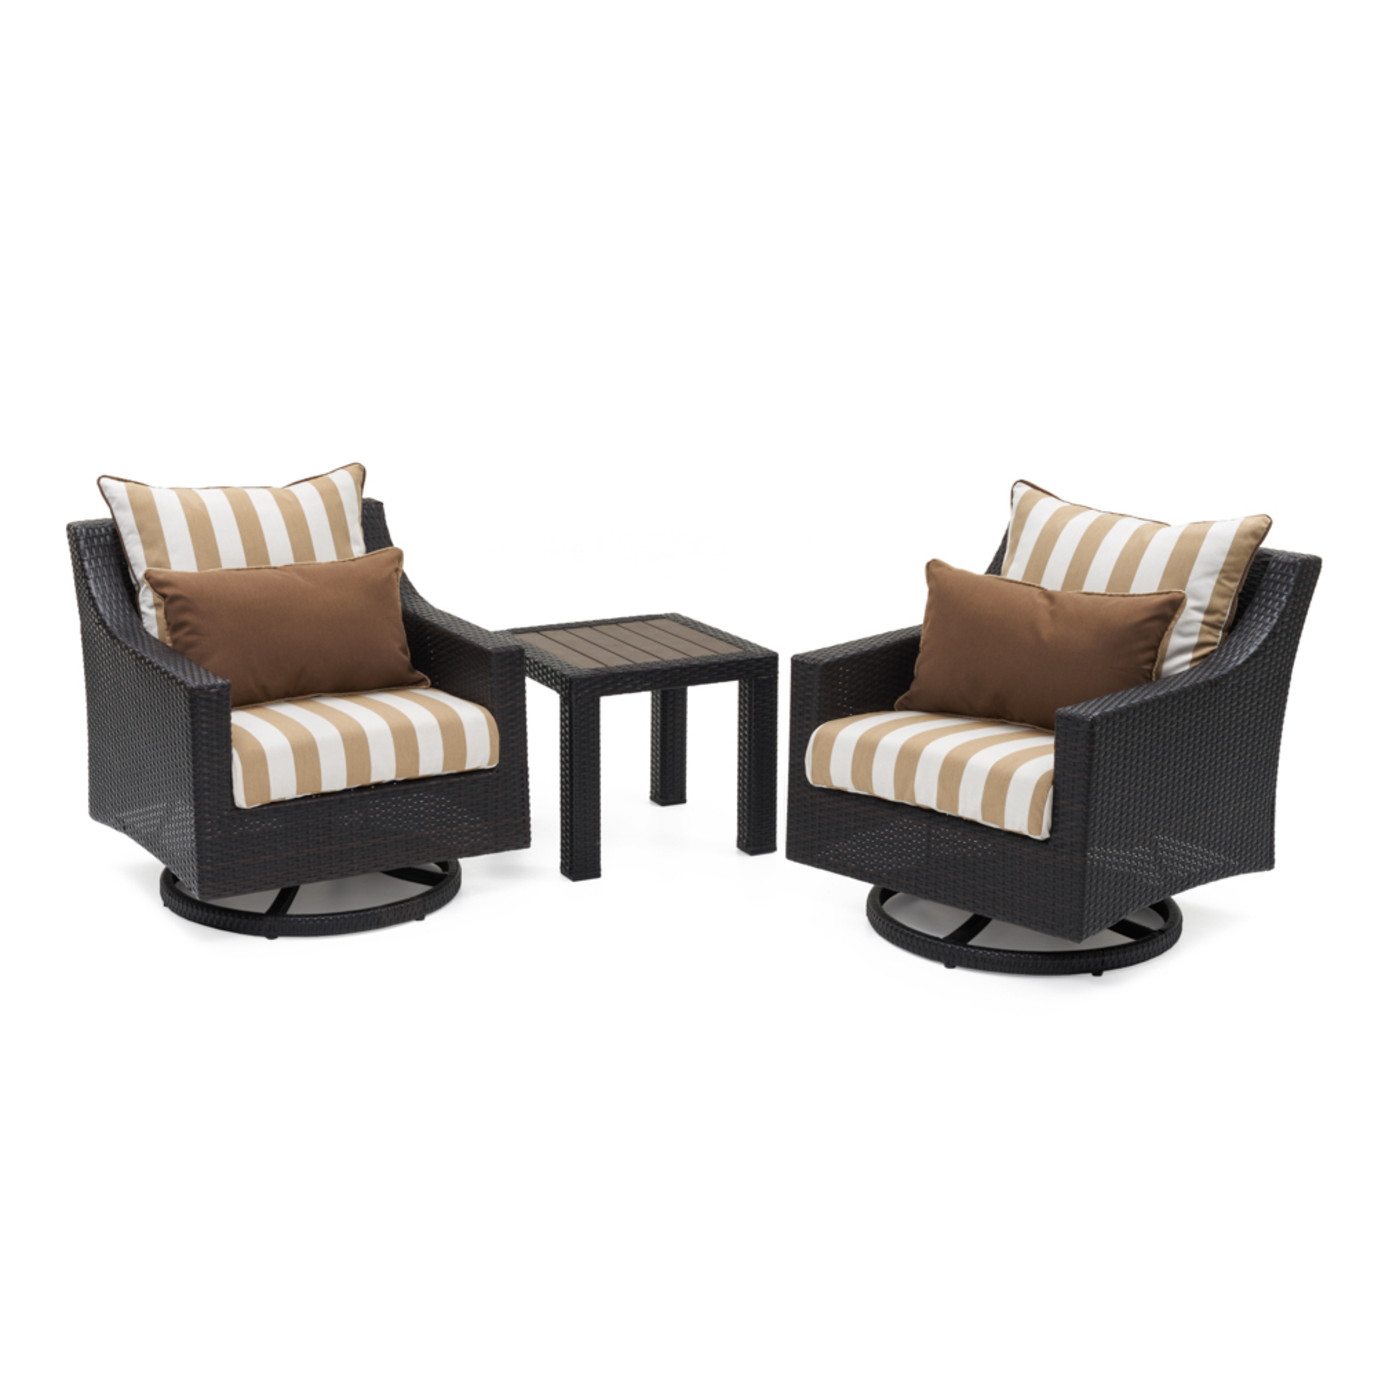 Deco™ Deluxe Motion Club Chairs & Side Table - Maxim Beige